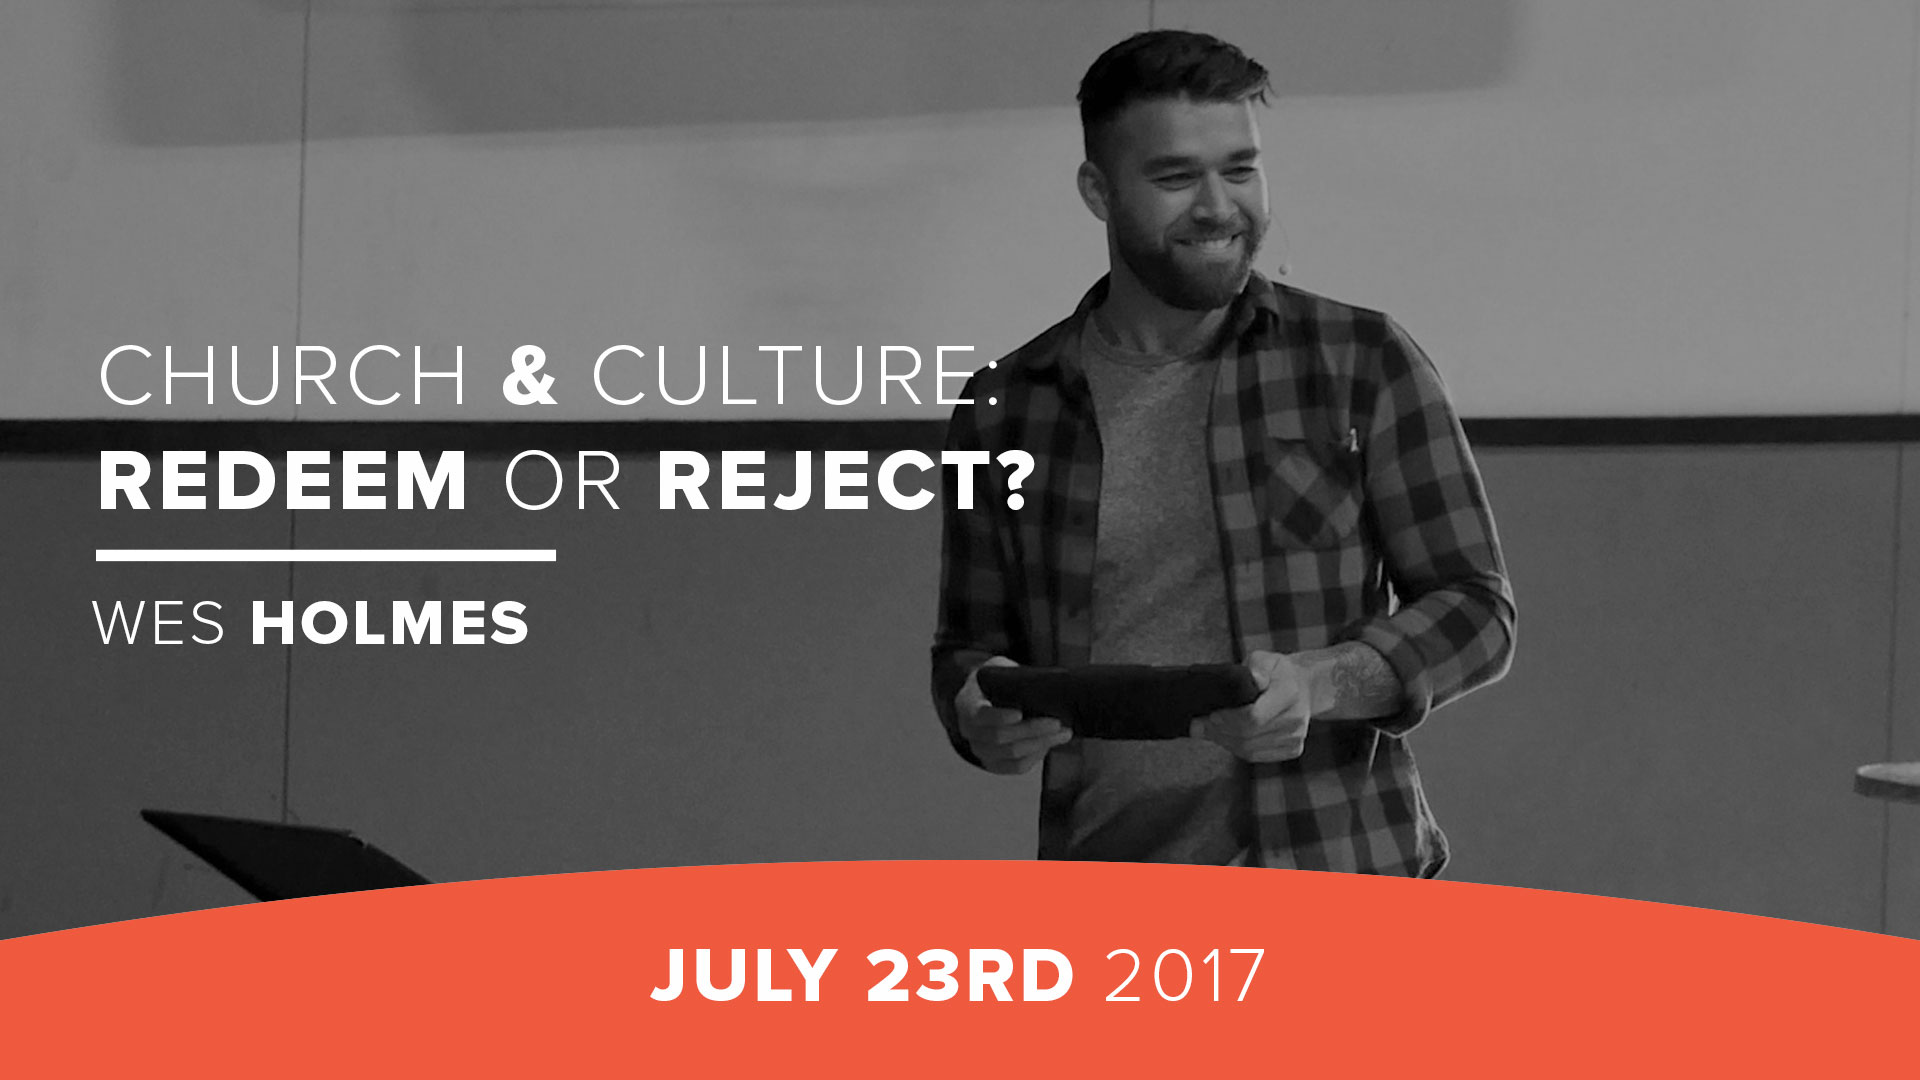 Church & Culture: Redeem or Reject?